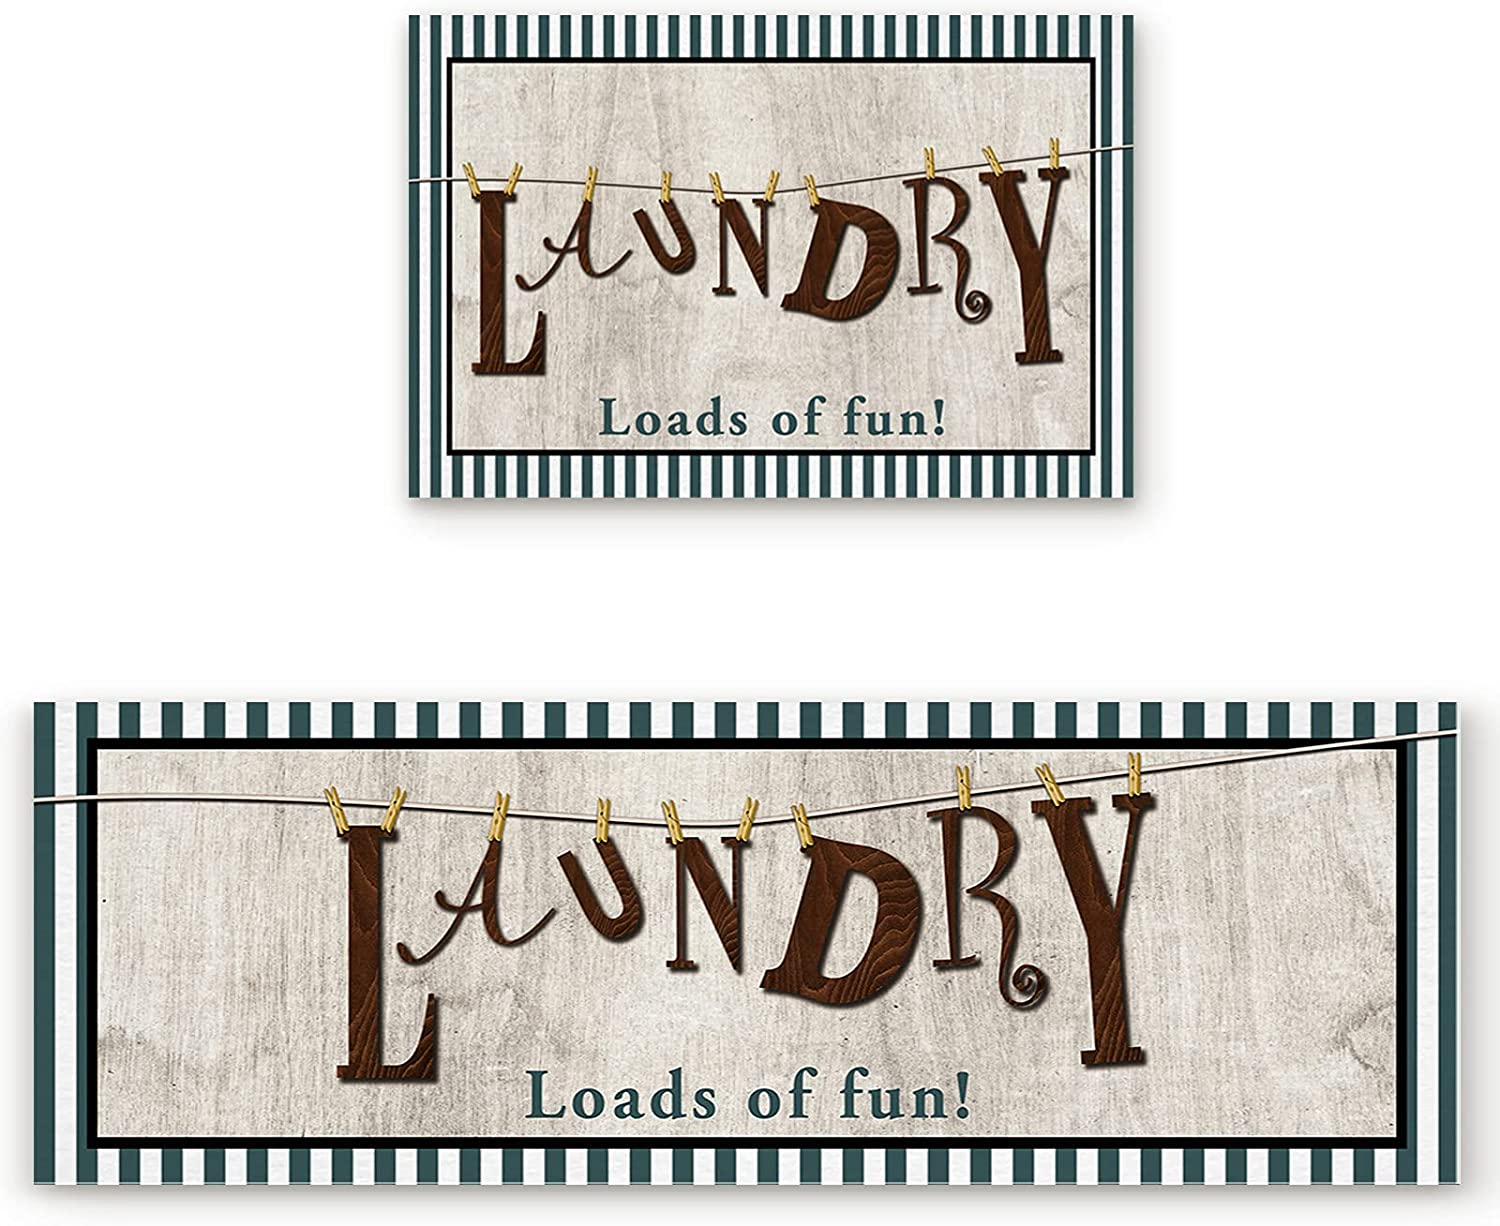 2 Piece Laundry Rugs Set Retro Manufacturer Finally resale start direct delivery Fun of Soft Room W Loads